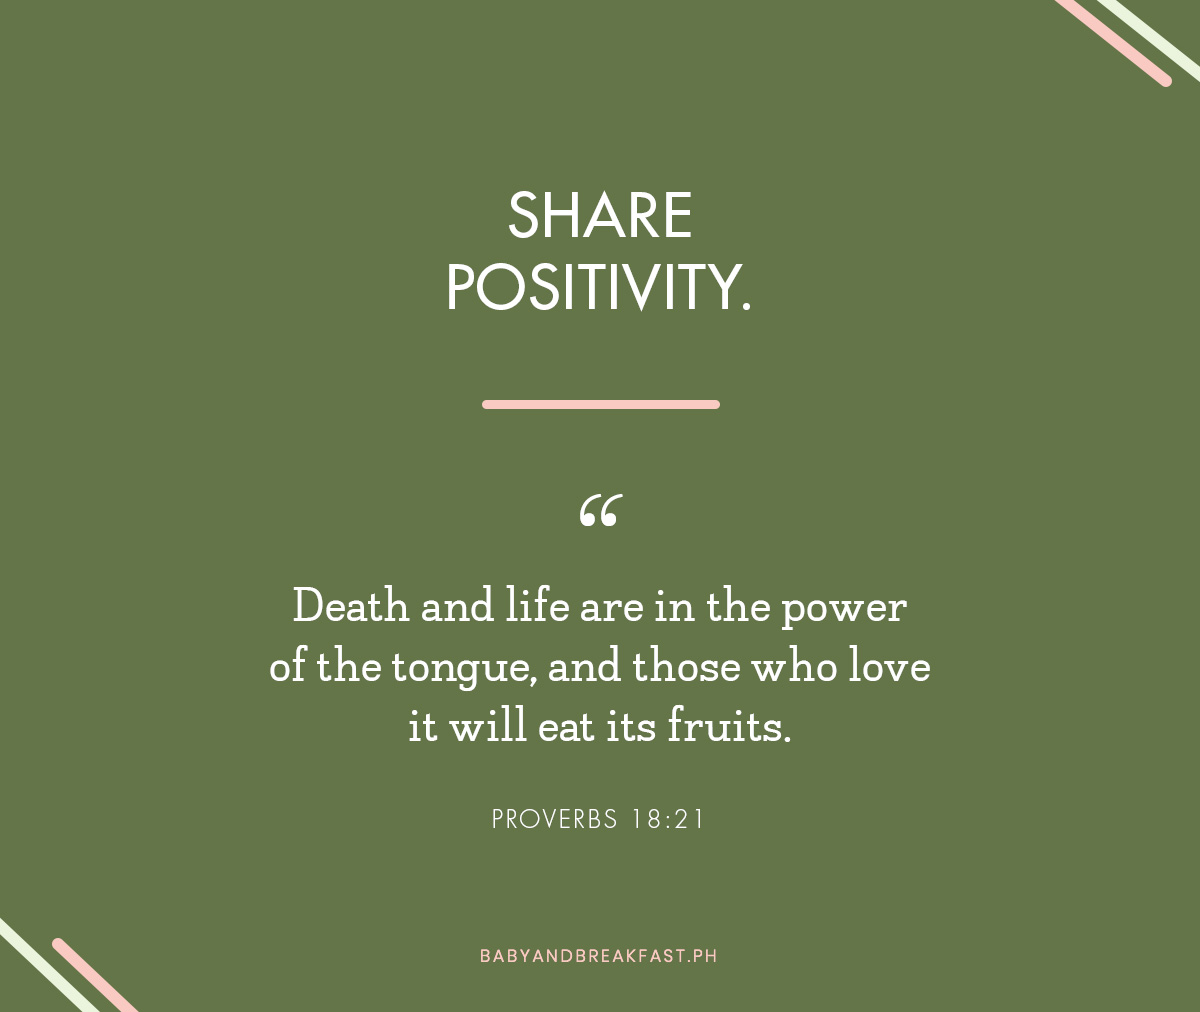 "Share positivity. ""Death and life are in the power of the tongue, and those who love it will eat its fruits."" - Proverbs 18:21"